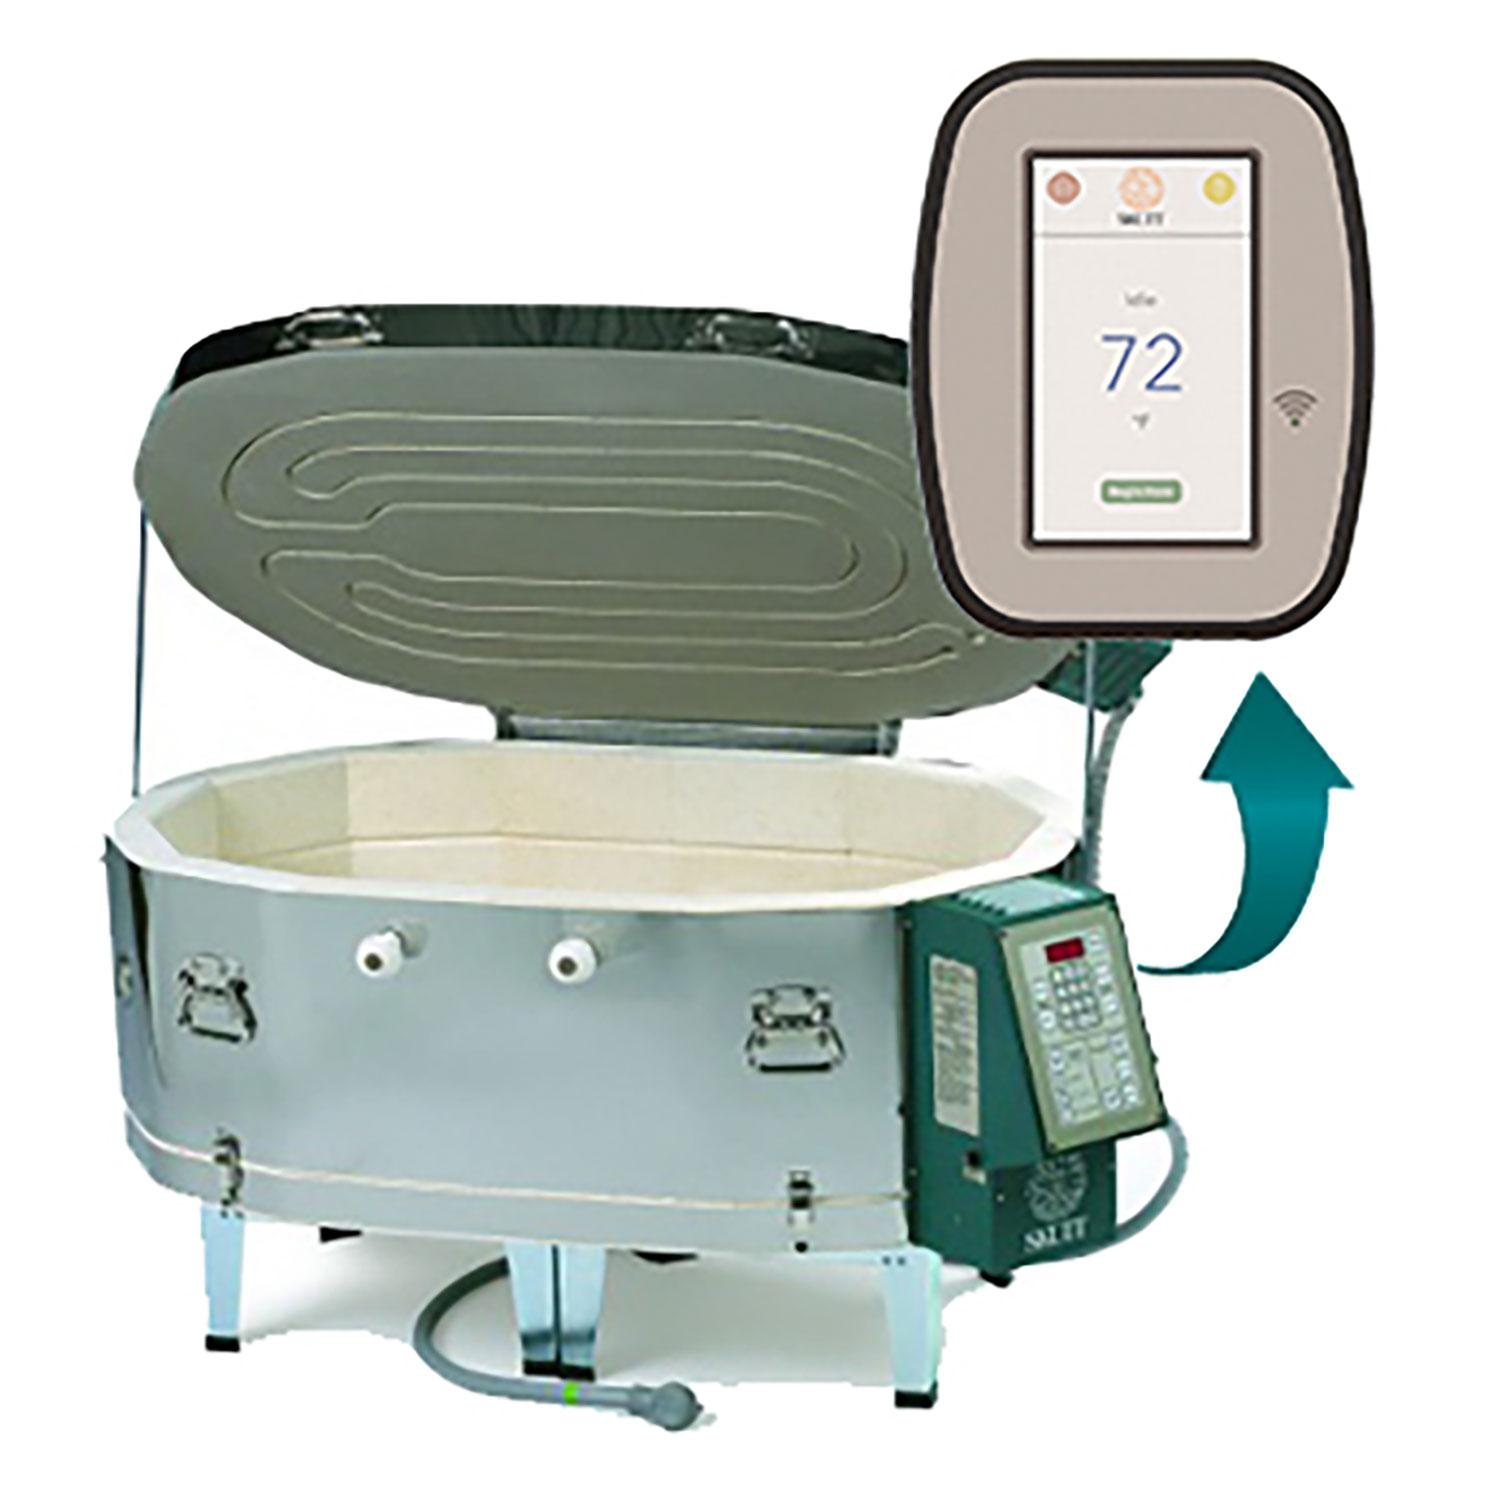 Skutt GM1414 Kiln With Touch Screen Controller And Lid Lifting System